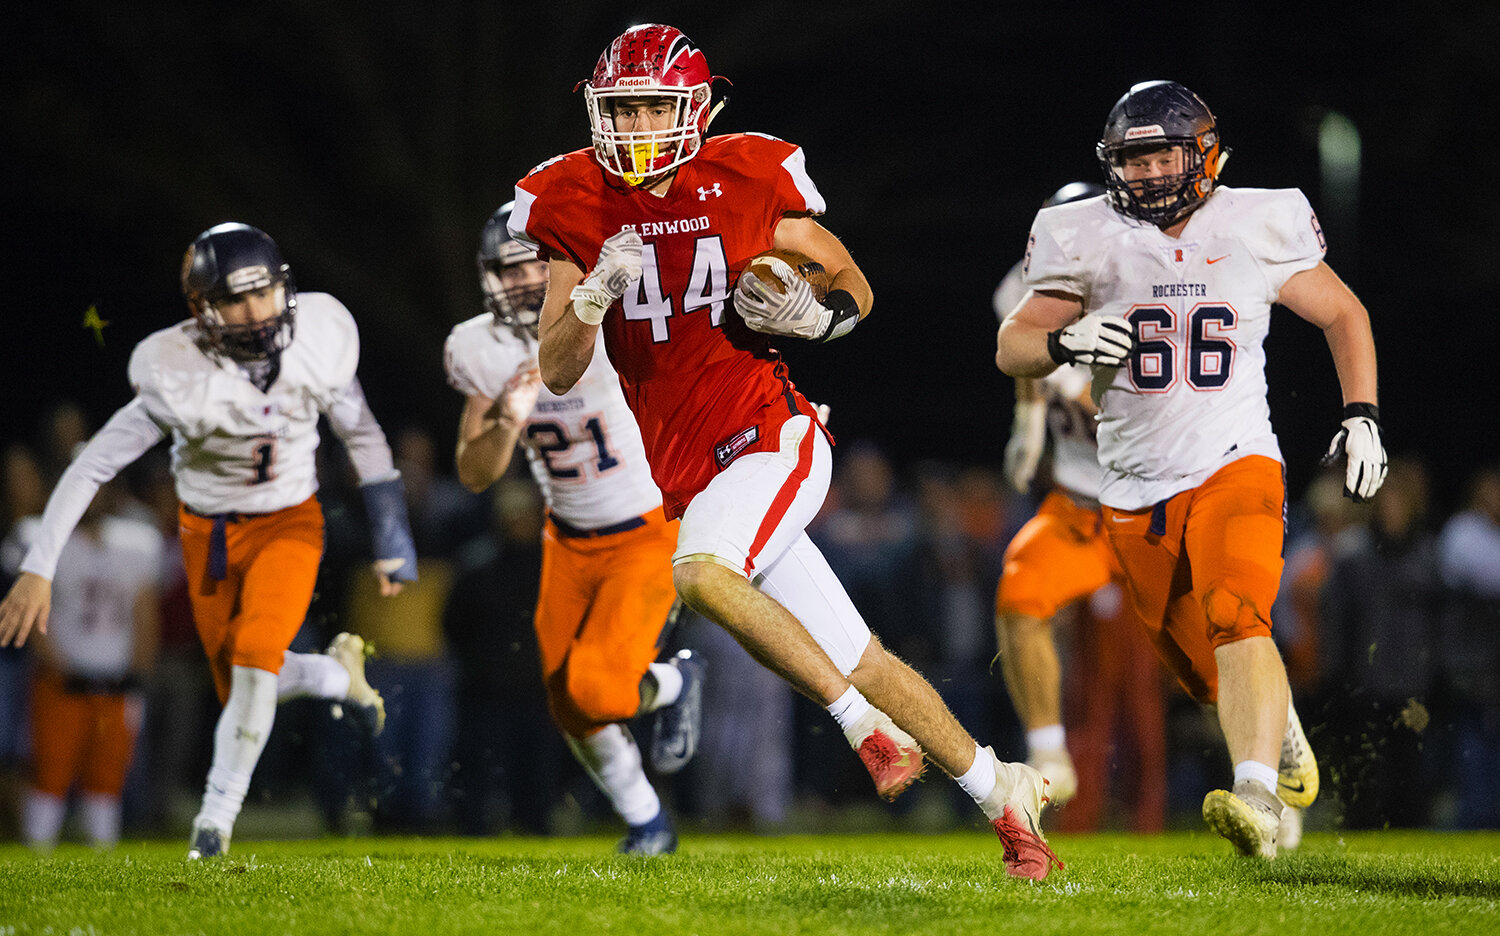 Glenwood's Tyler Burris (44) makes a break for the endzone after a pass reception against Rochester at Glenwood High School Friday, Oct. 25, 2019. [Ted Schurter/The State Journal-Register]